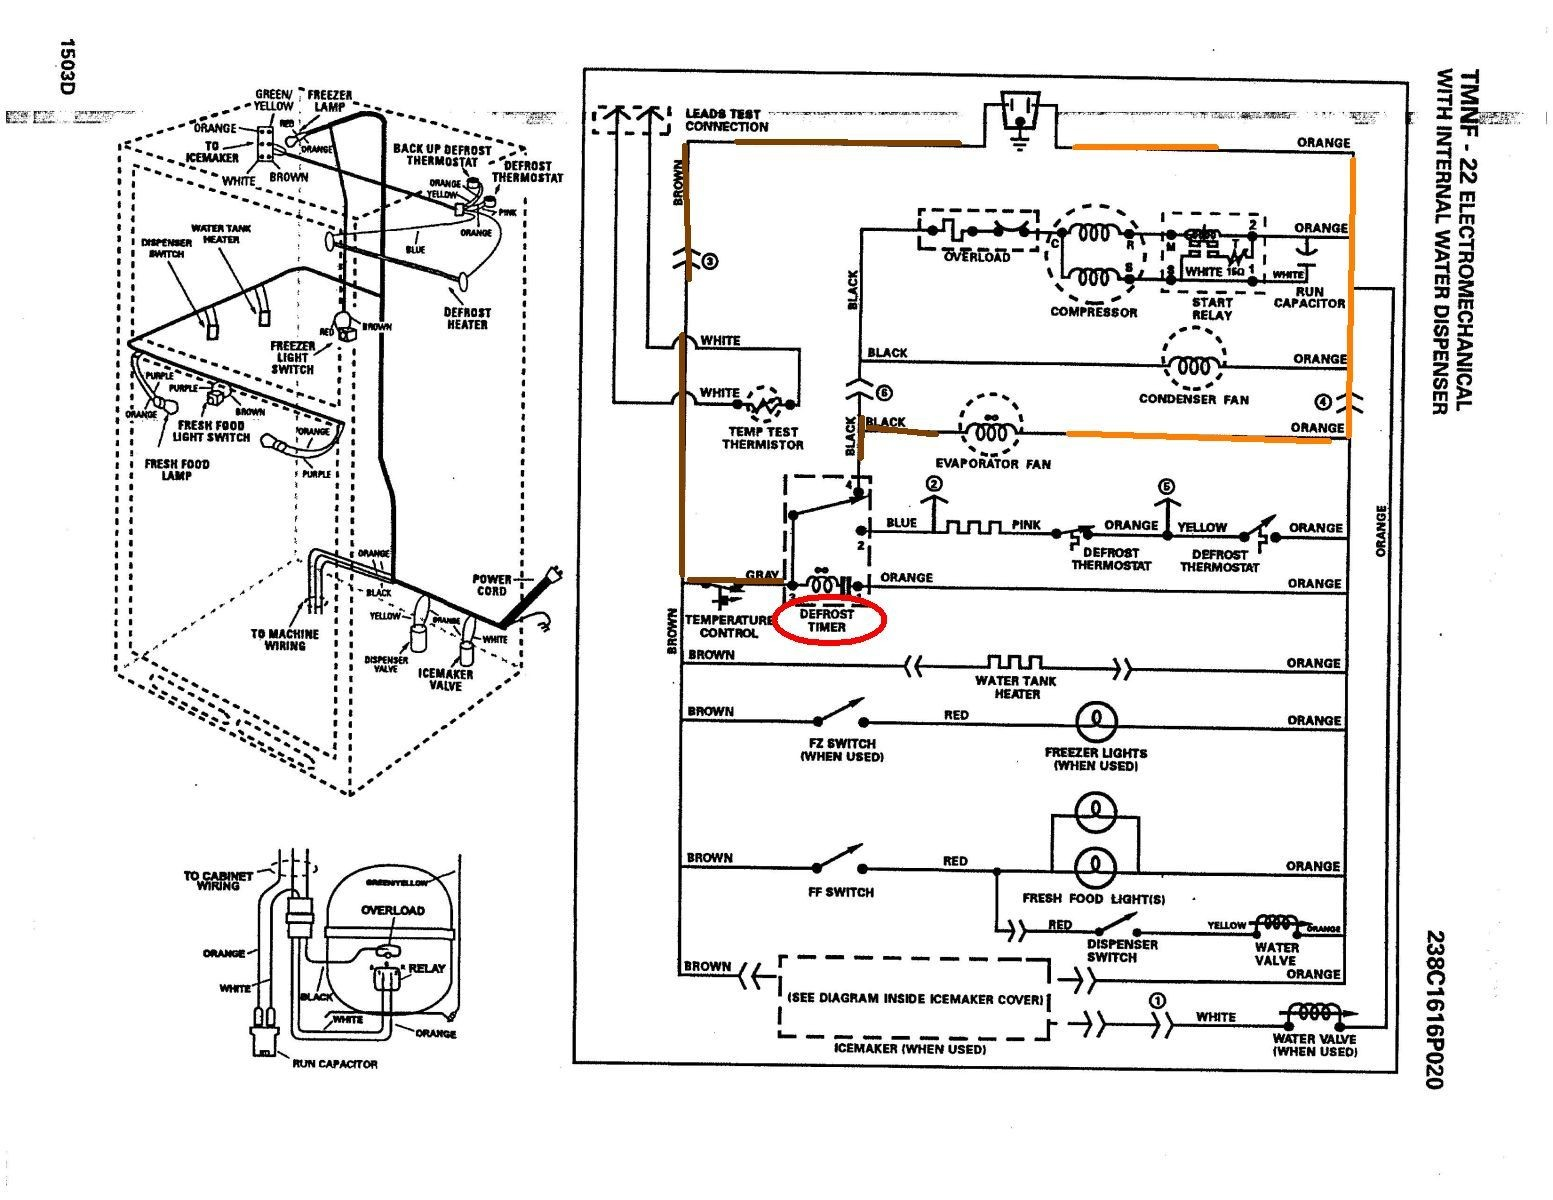 fridge wire diagram private sharing about wiring diagram u2022 rh gracedieupriory co uk 12v fridge relay wiring diagram